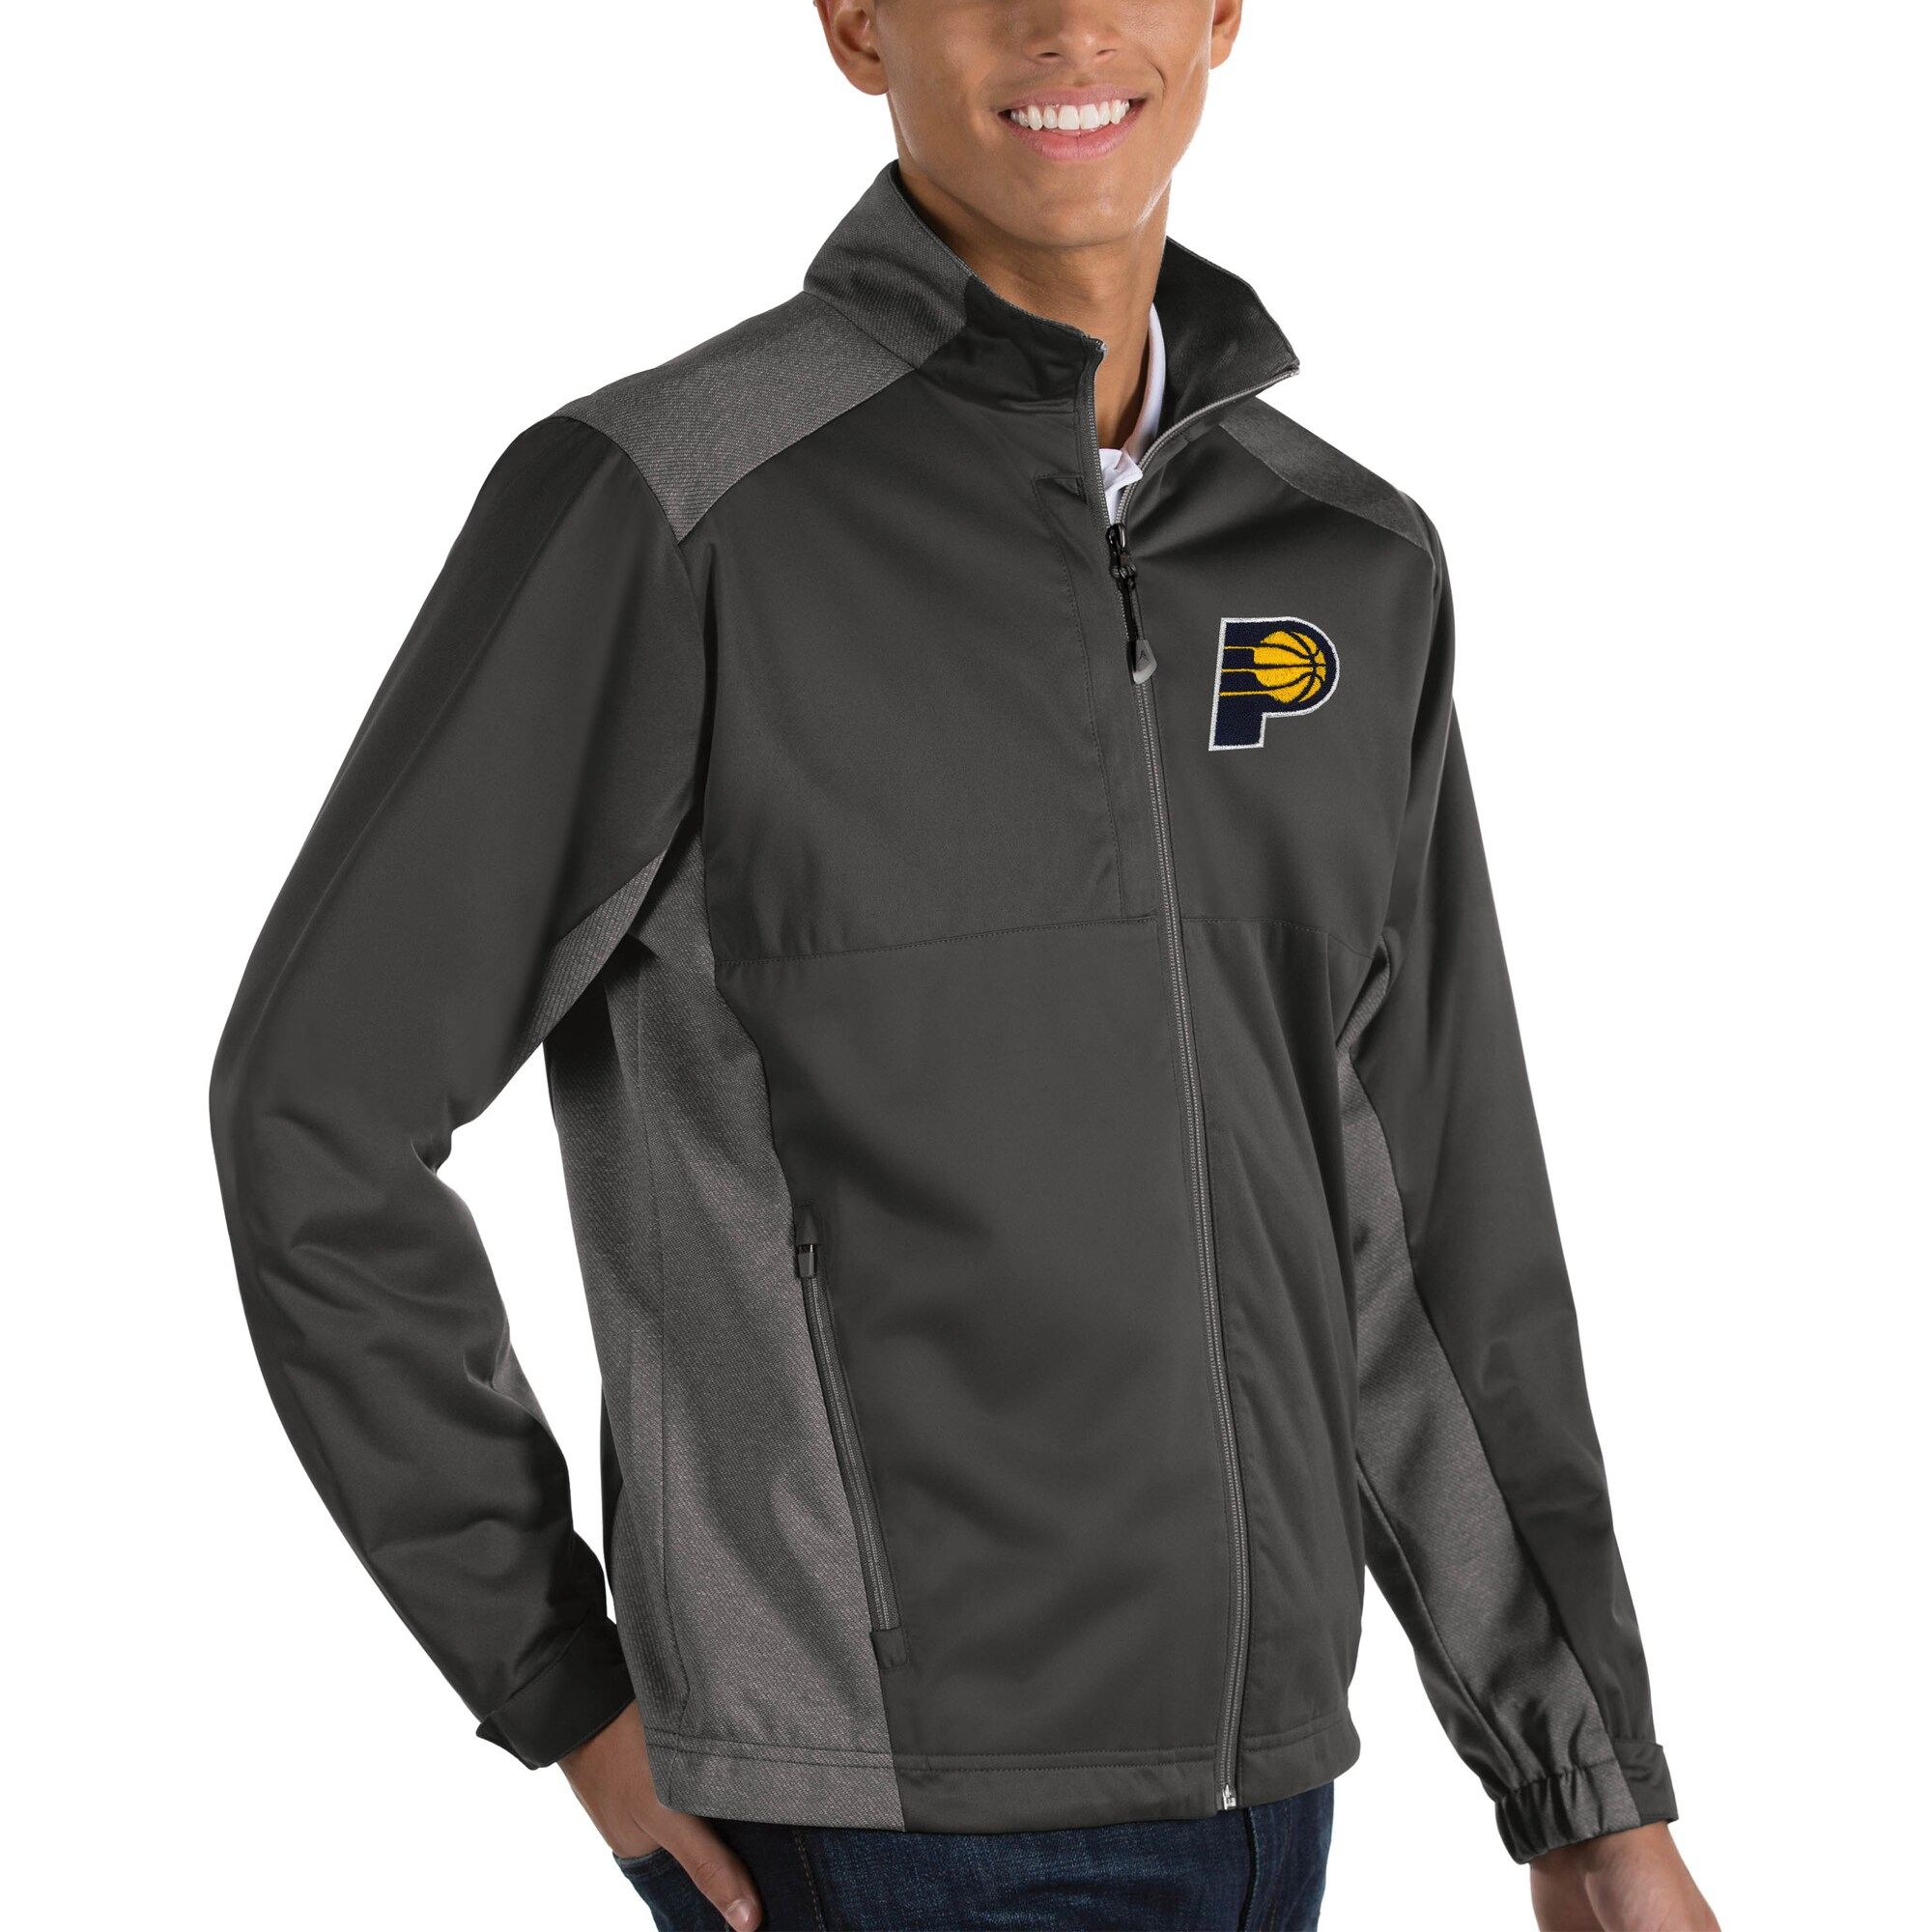 Indiana Pacers Antigua Revolve Big & Tall Full-Zip Jacket - Charcoal